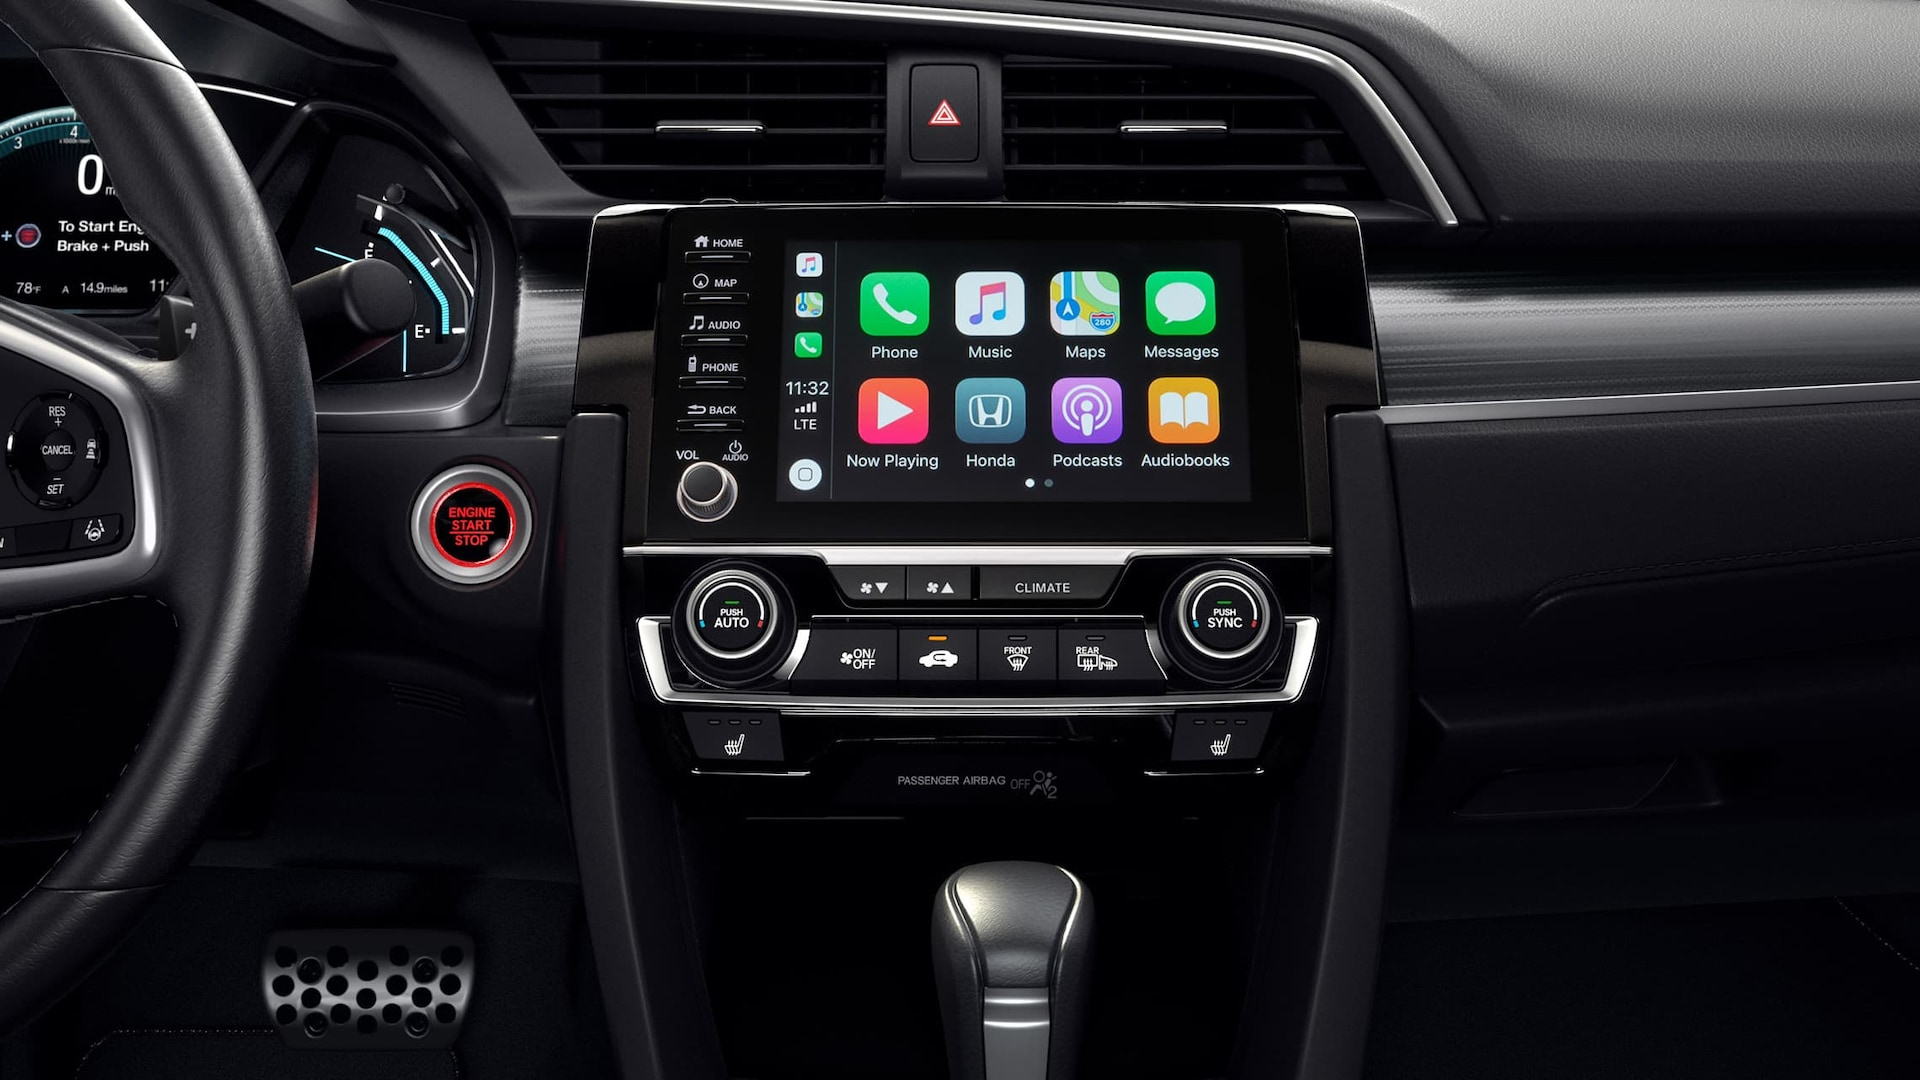 Apple CarPlay® detail on Display-Audio touchscreen in the 2019 Honda Civic Touring Sedan.